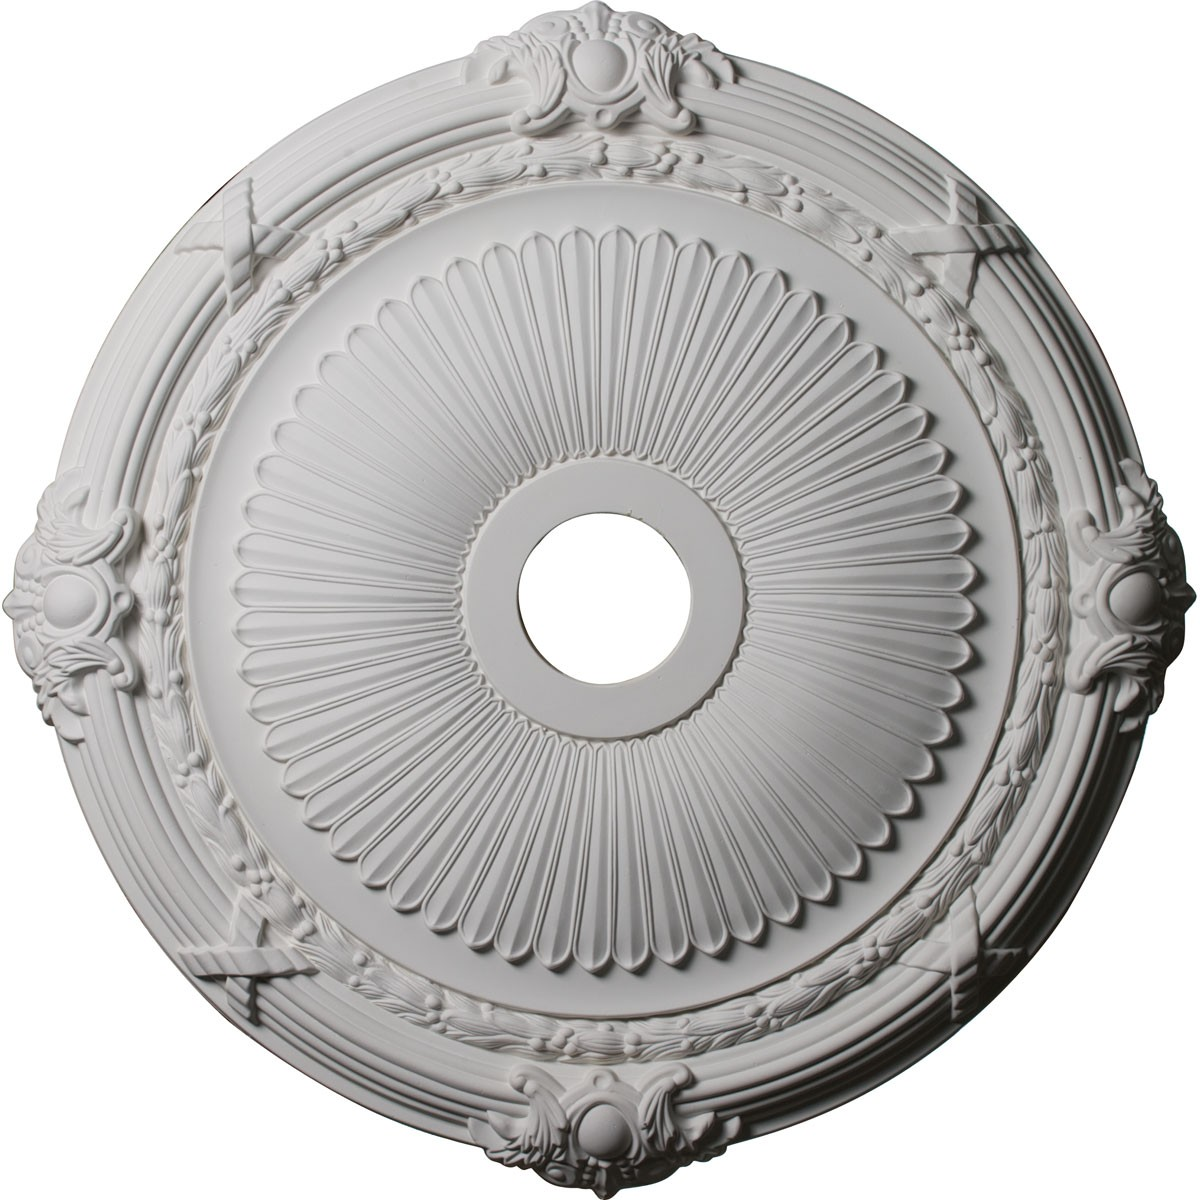 """EM-CM27HE - 27 1/2""""OD x 3 7/8""""ID x 2 1/4""""P Heaton Ceiling Medallion (Fits Canopies up to 6 1/2"""")"""